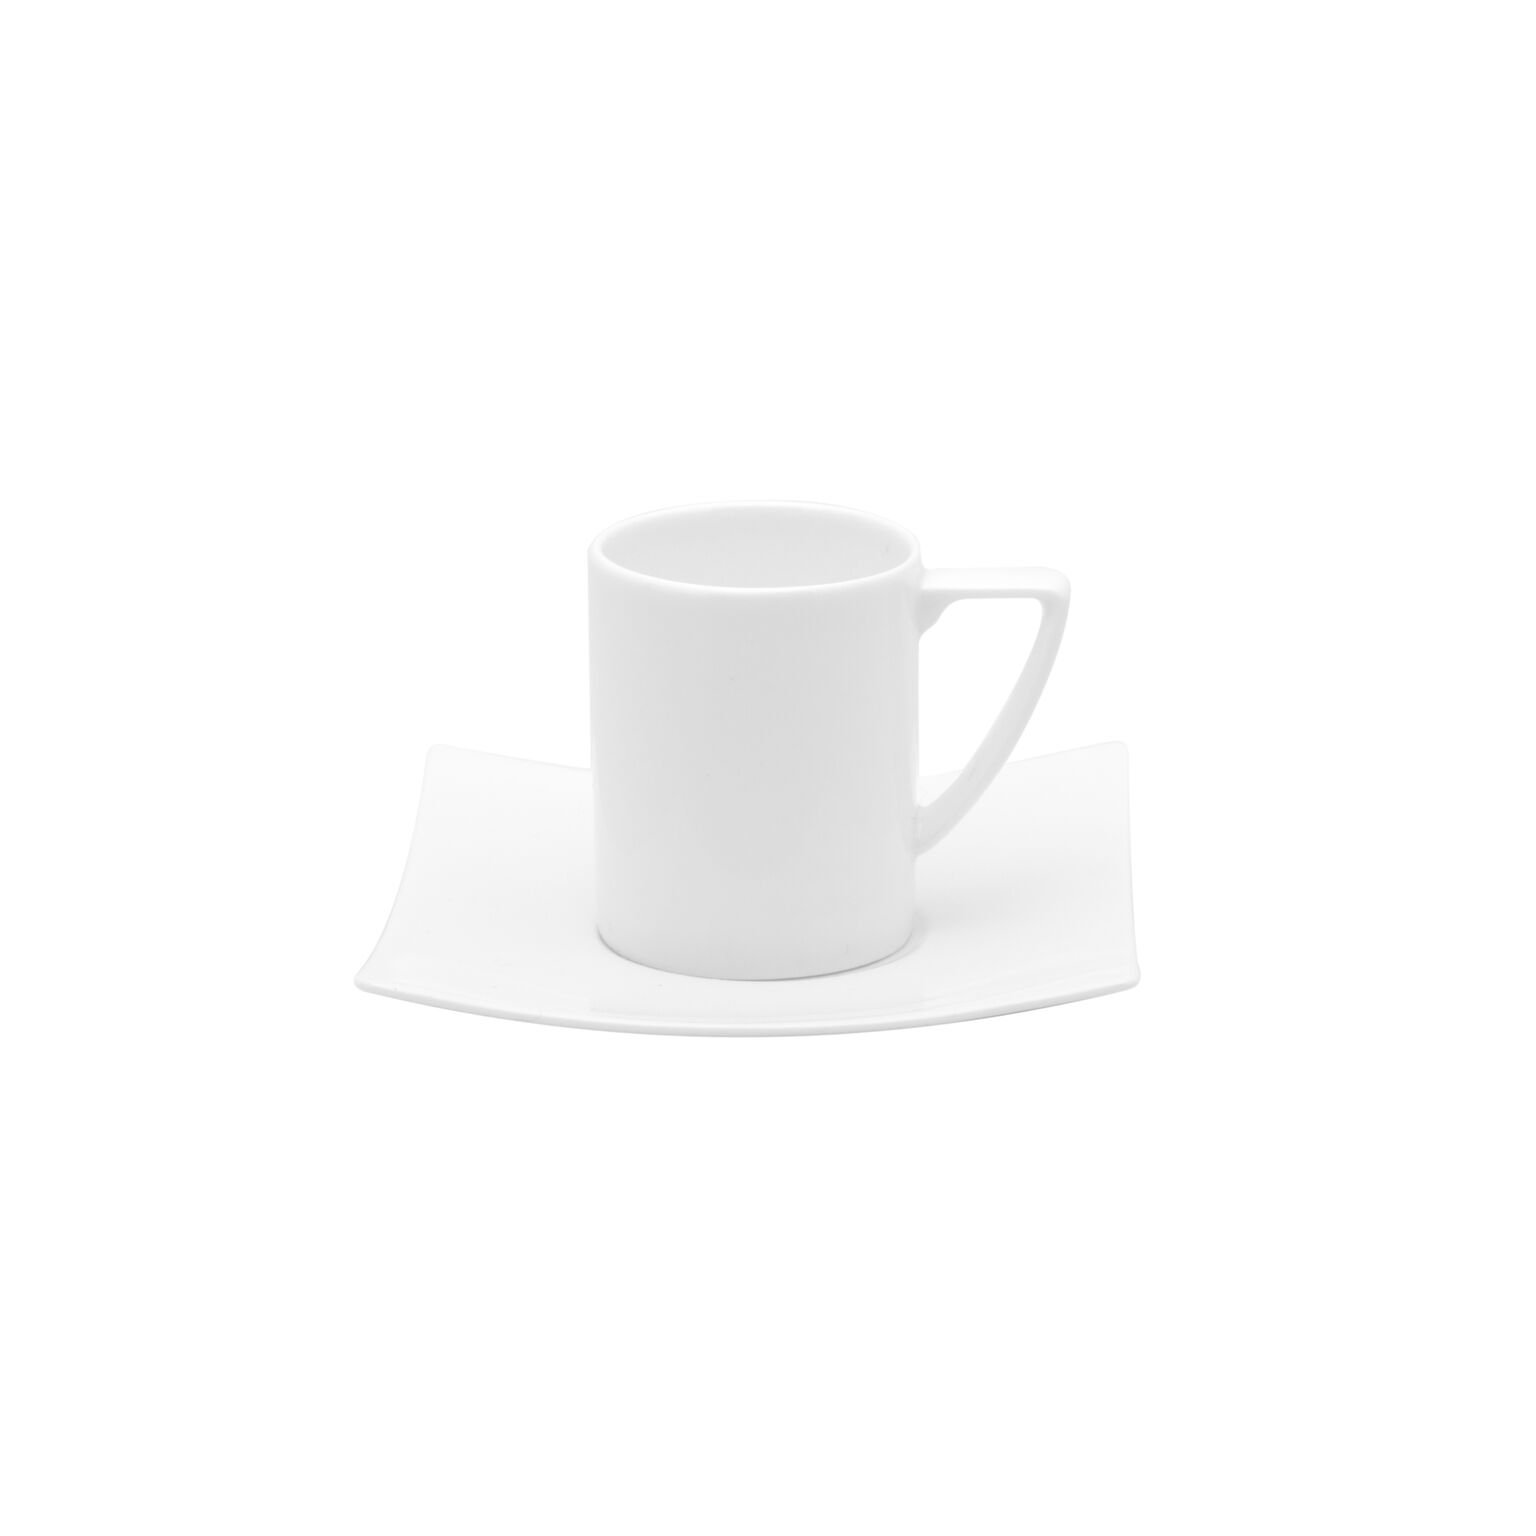 Red Vanilla Extreme Espresso Cup and Saucer Set, Set Of 6, 3 oz, White by Red Vanilla (Image #1)